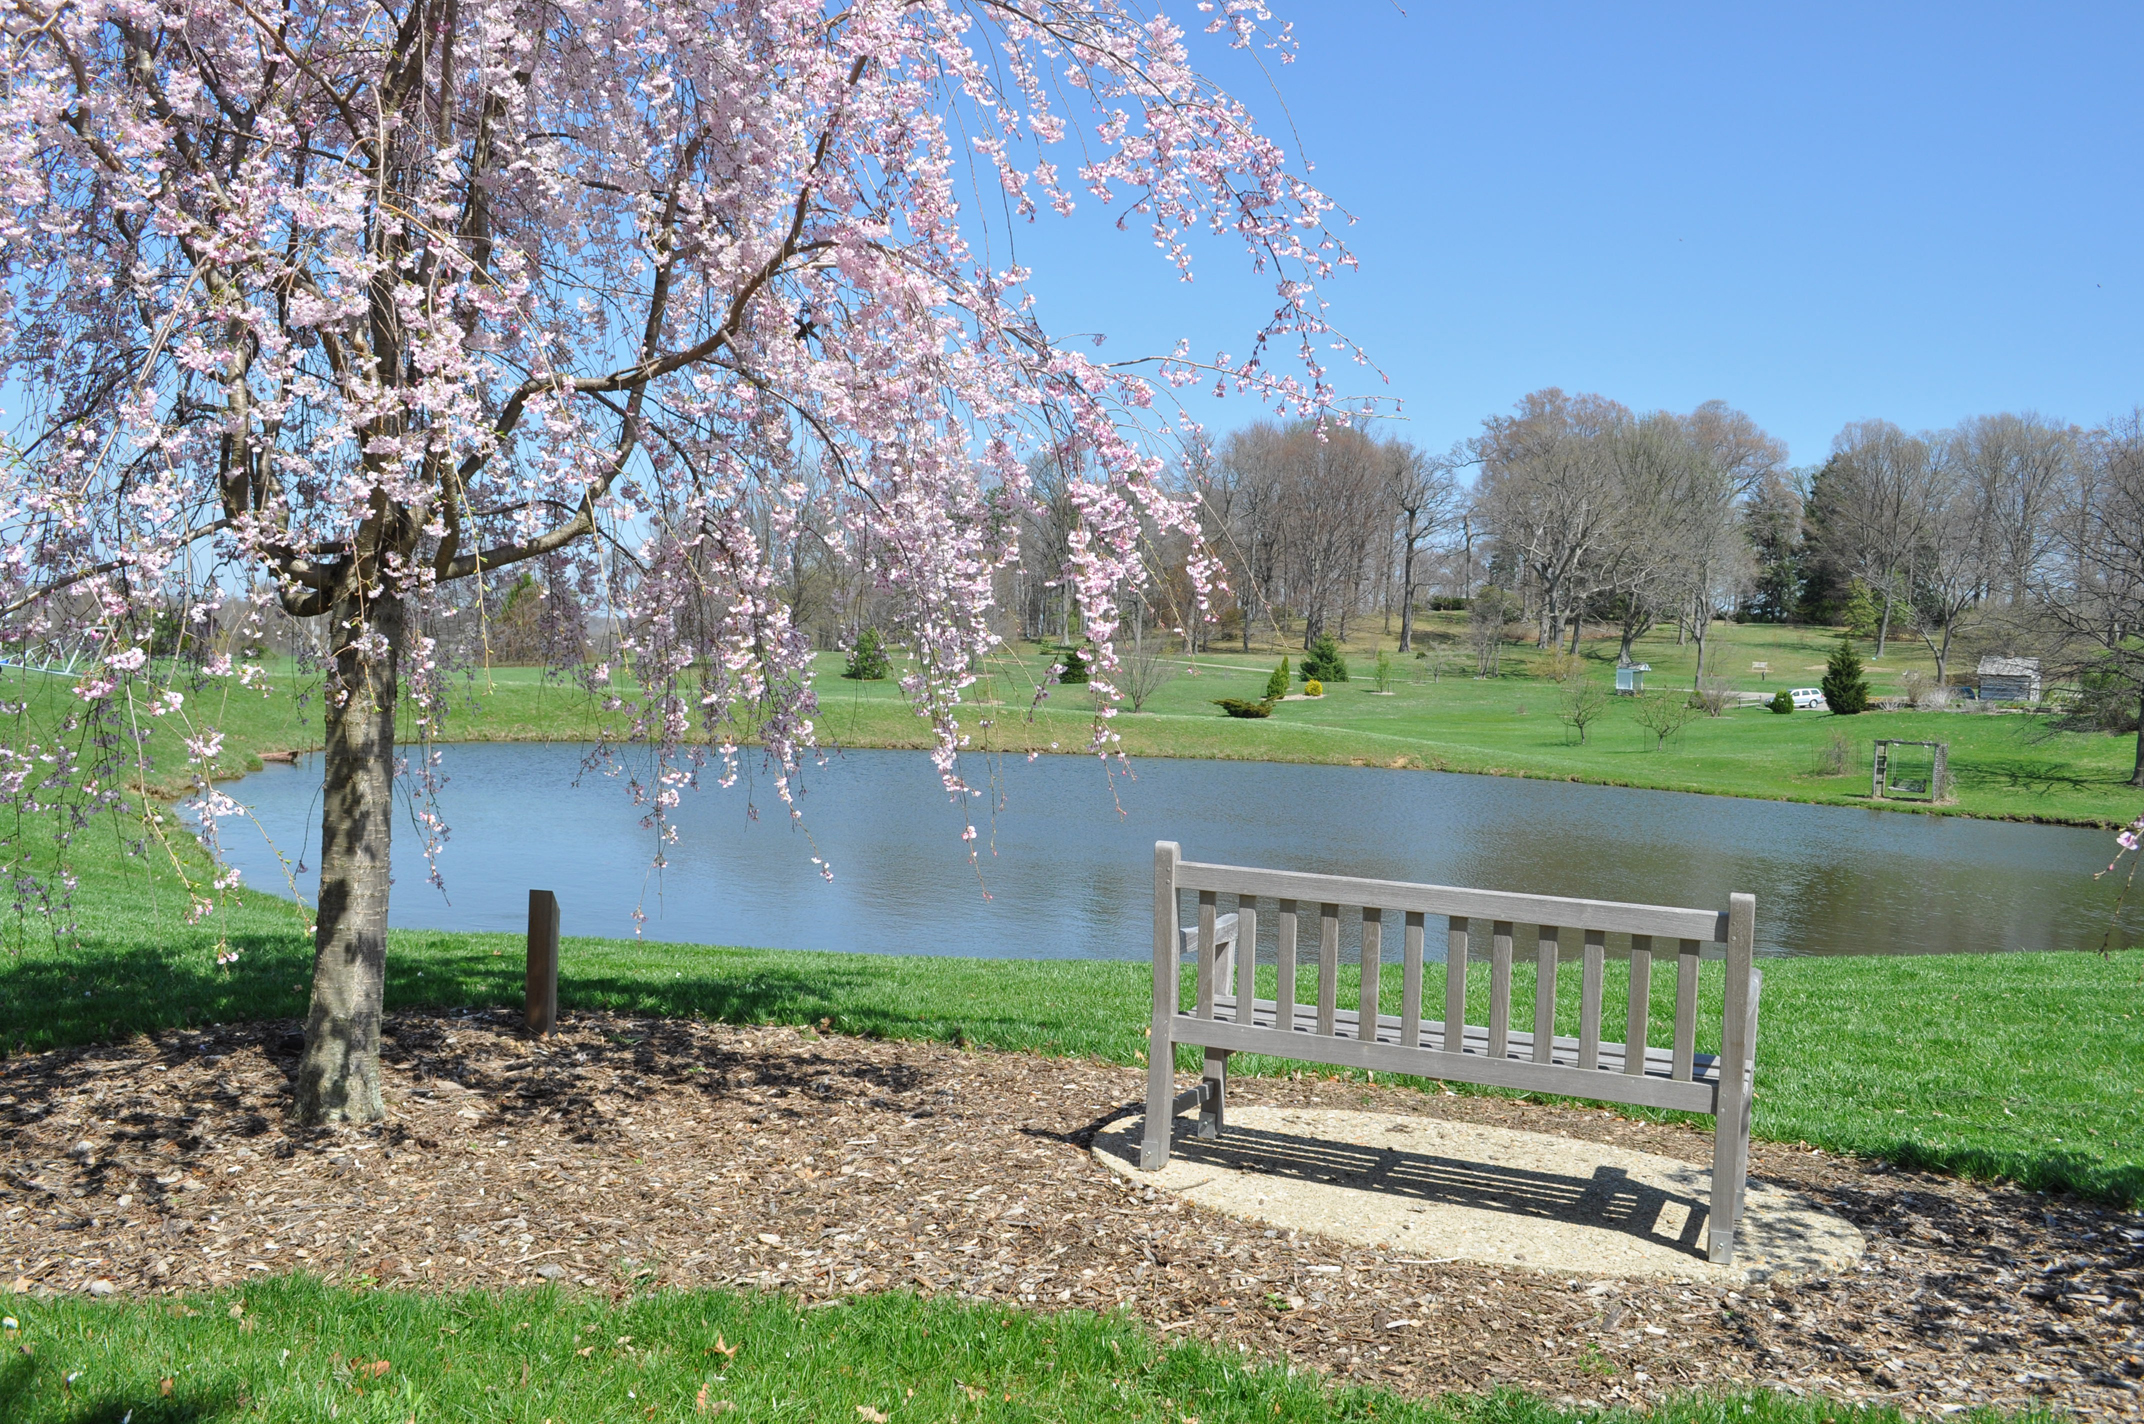 A bench resting by the side of a lake under a blossoming tree